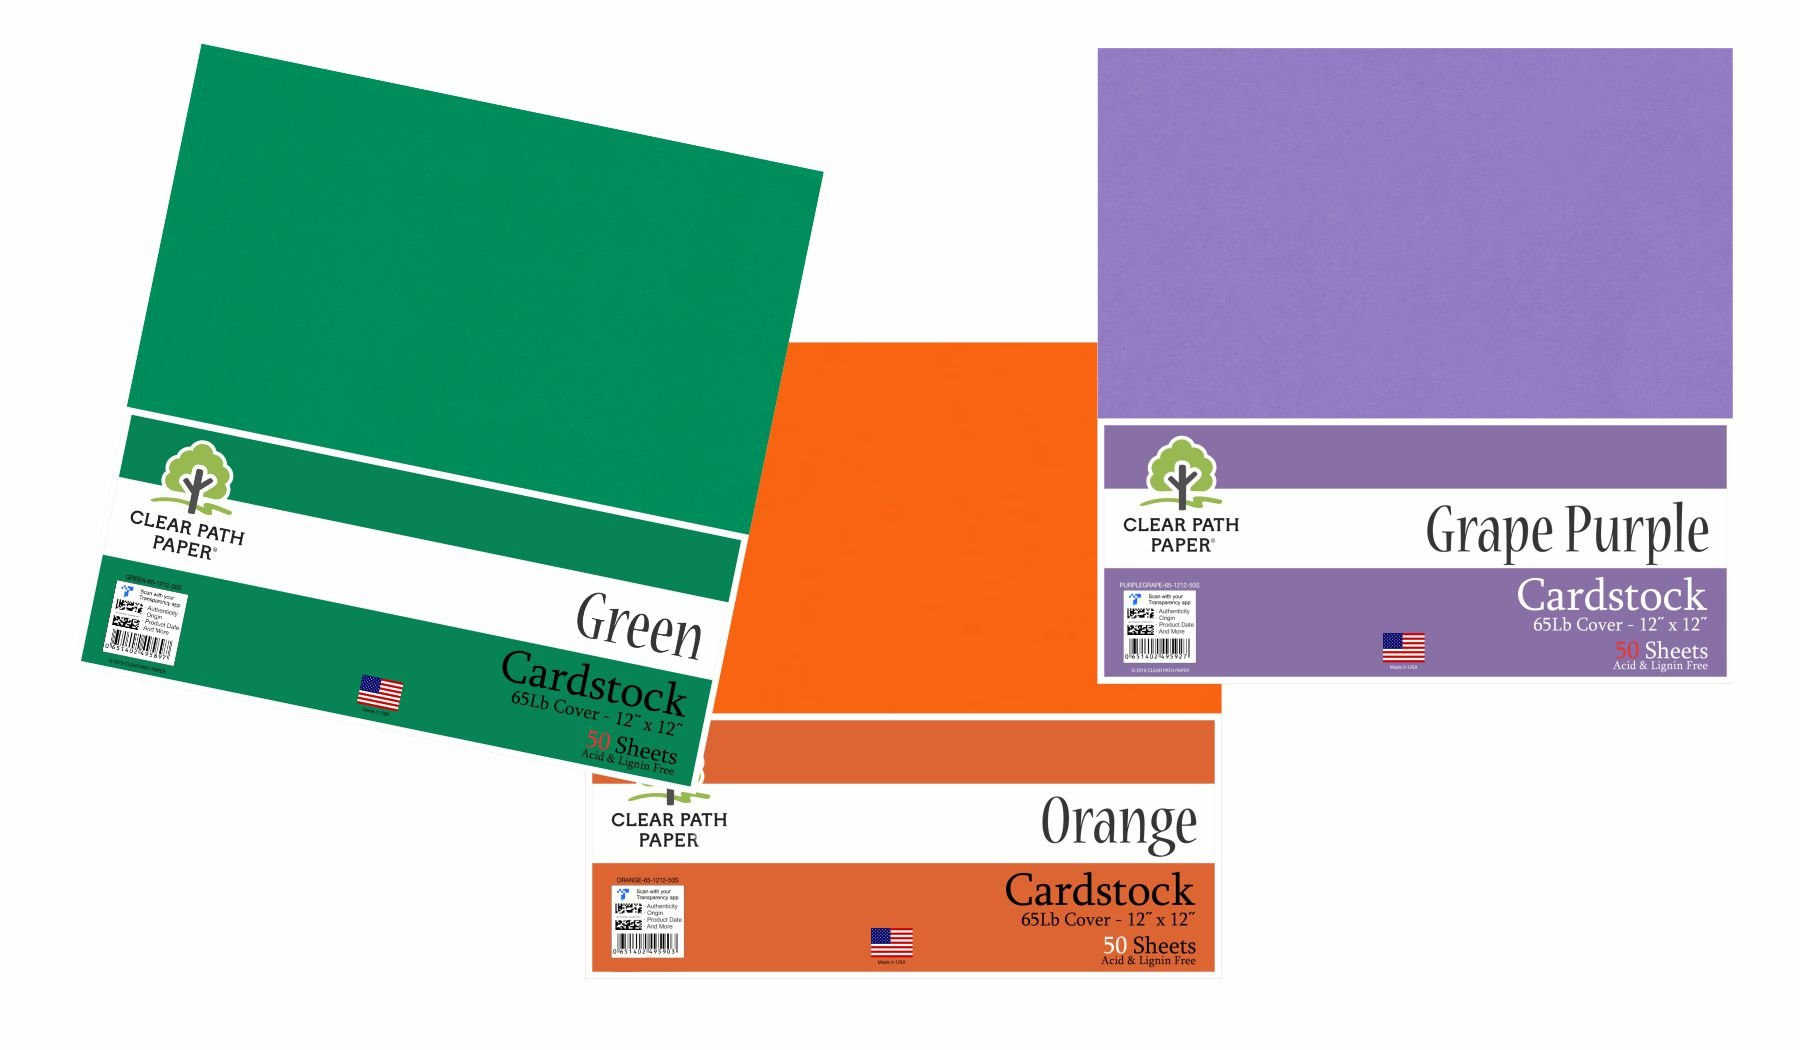 Image of an Amazon bundle of Green, Orange, and Grape Purple cardstock packs